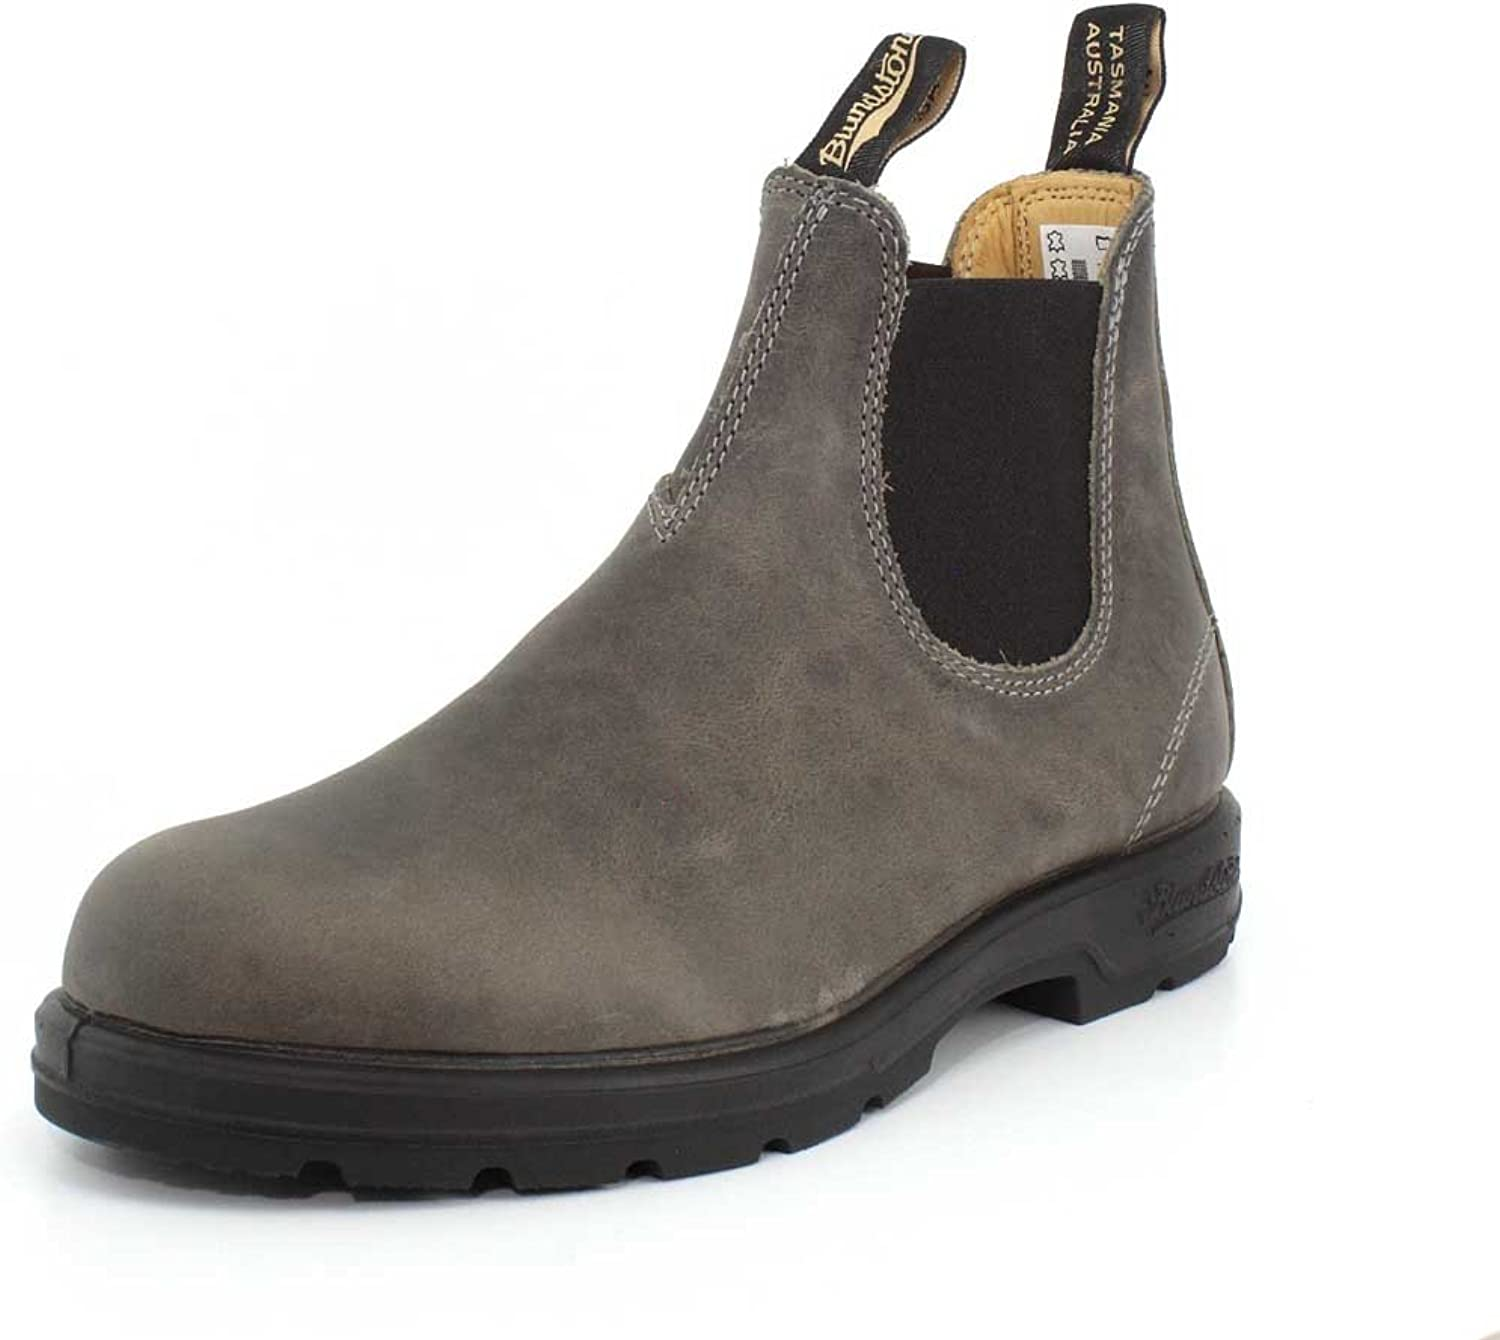 bluendstone Unisex 1469 Steel Grey Boot - 12 UK